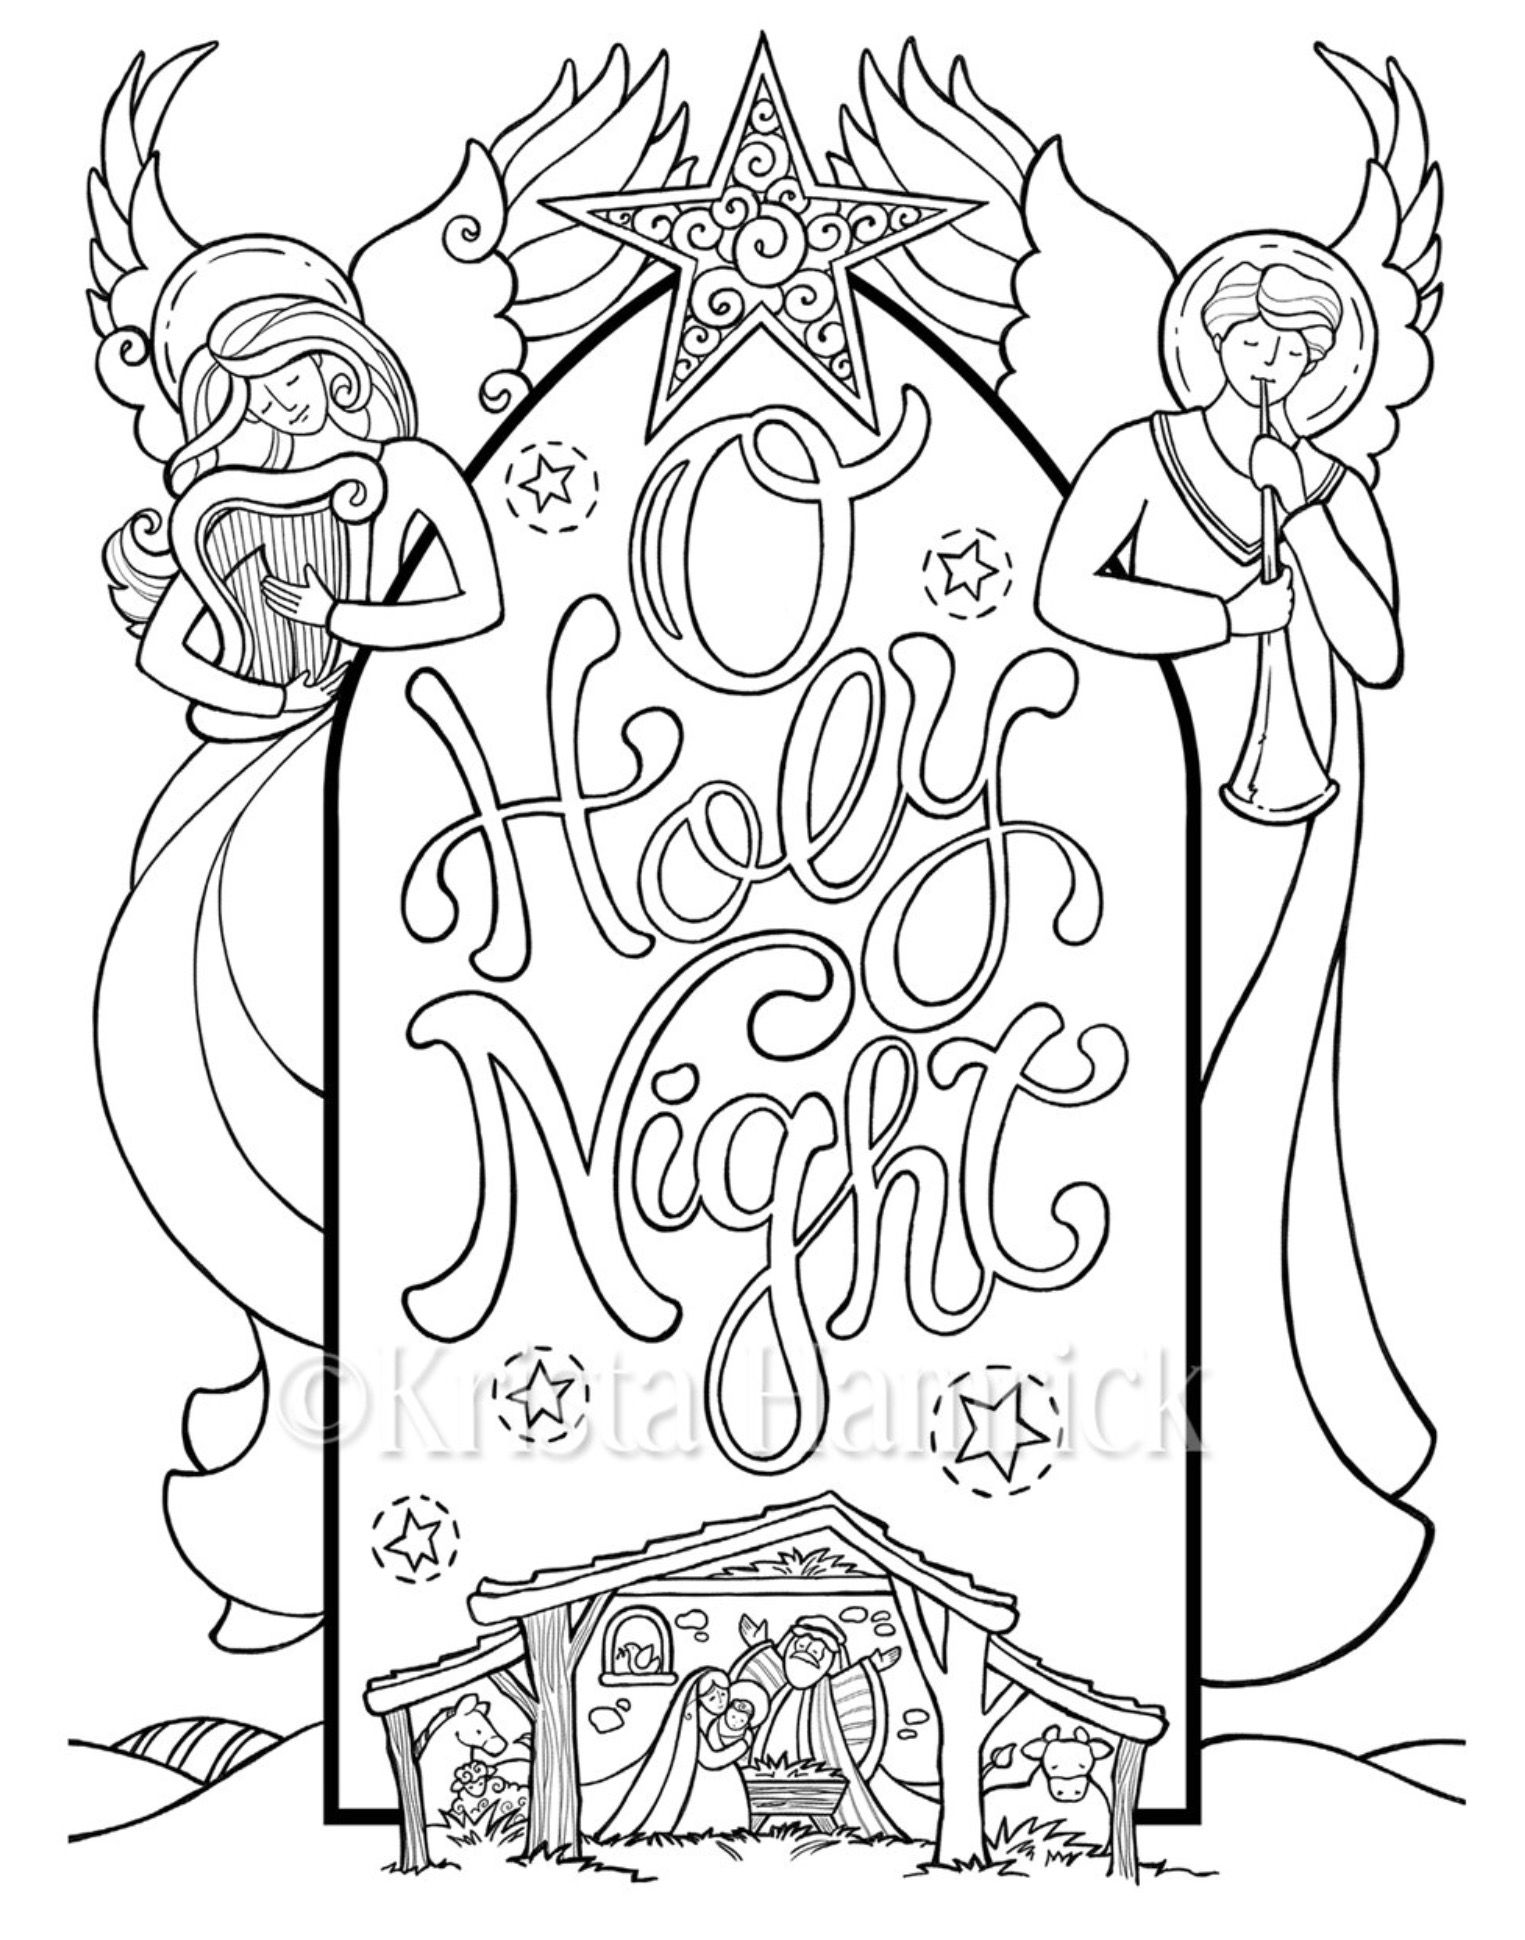 Discover Ideas About Sunday School Activities O Holy Night Nativity Scene Coloring Page In Two By KristaHamrick